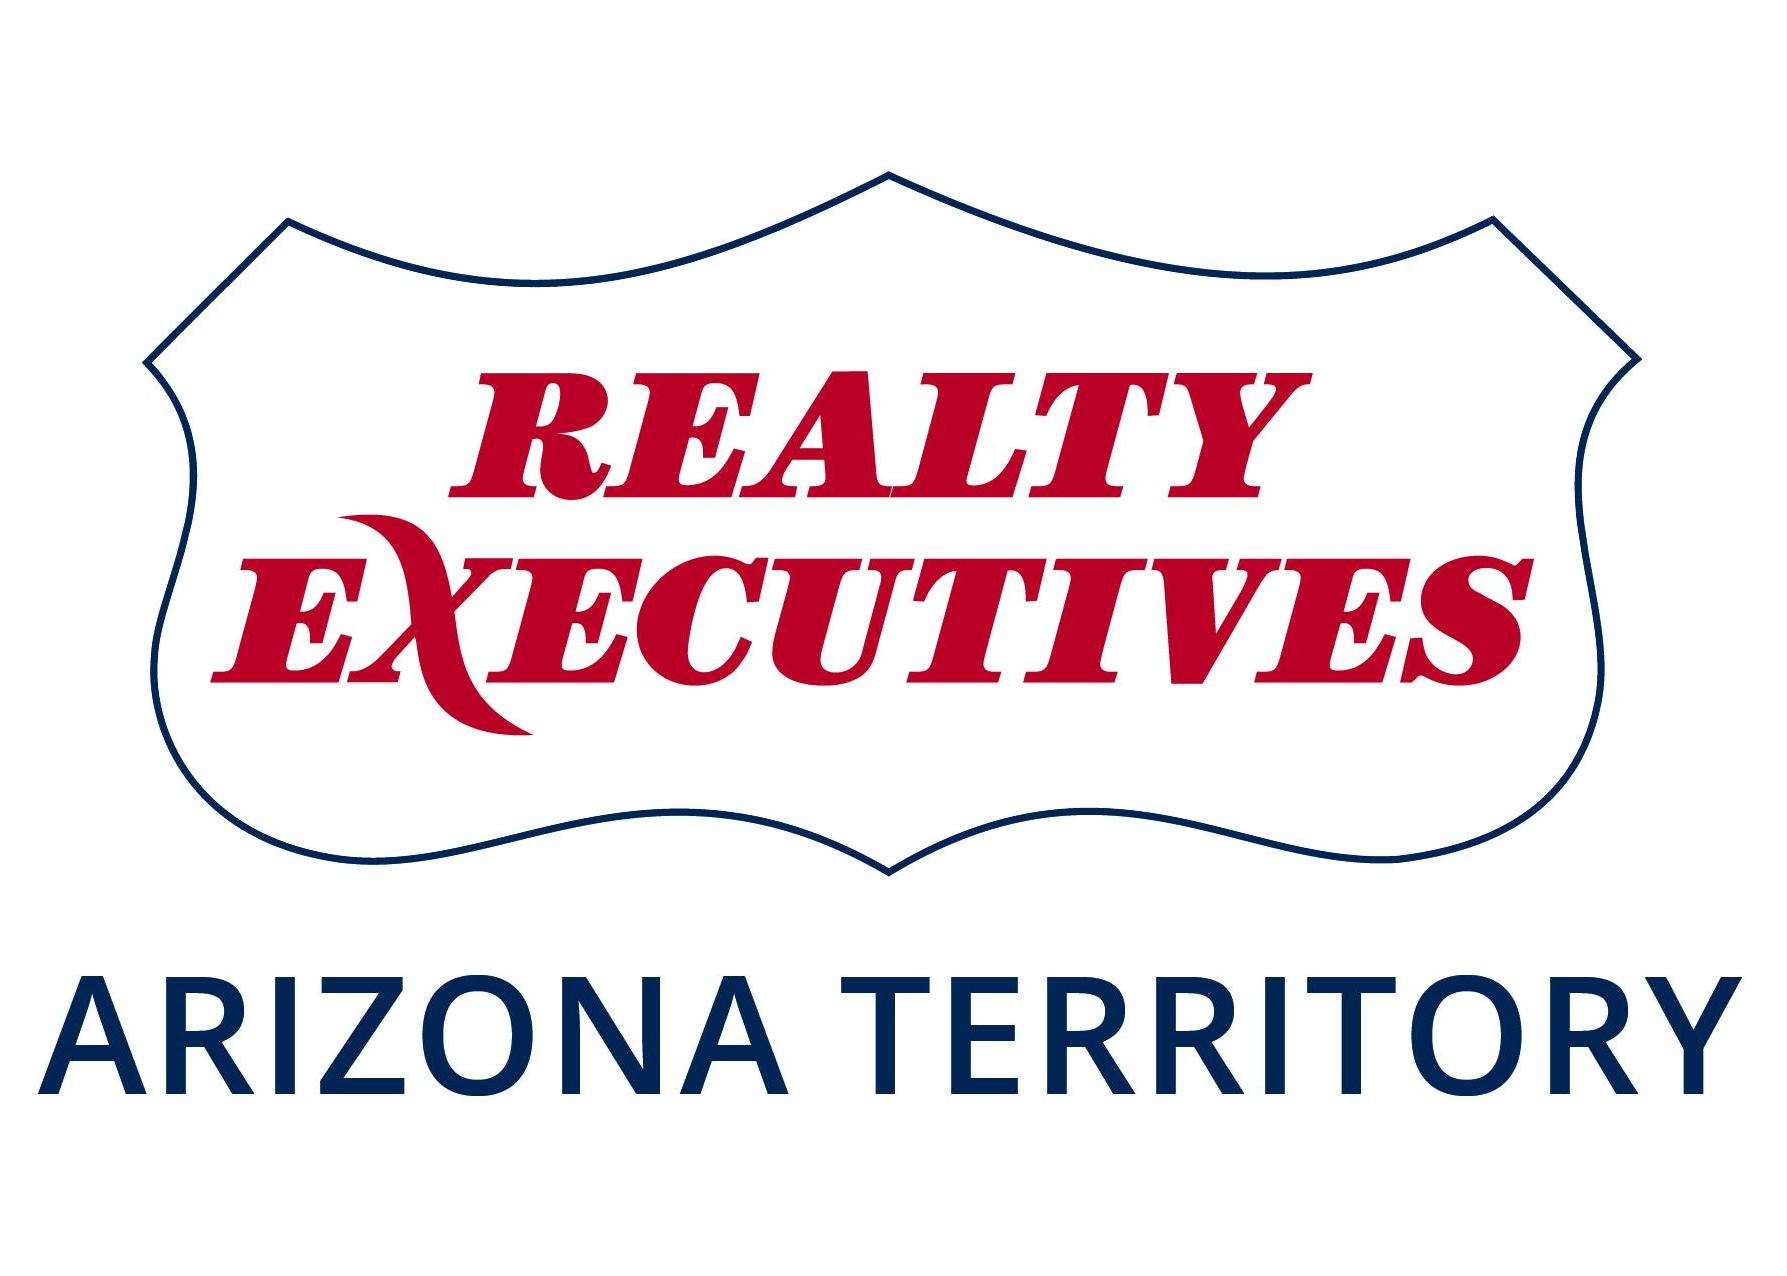 Realty Executives Arizona Territory